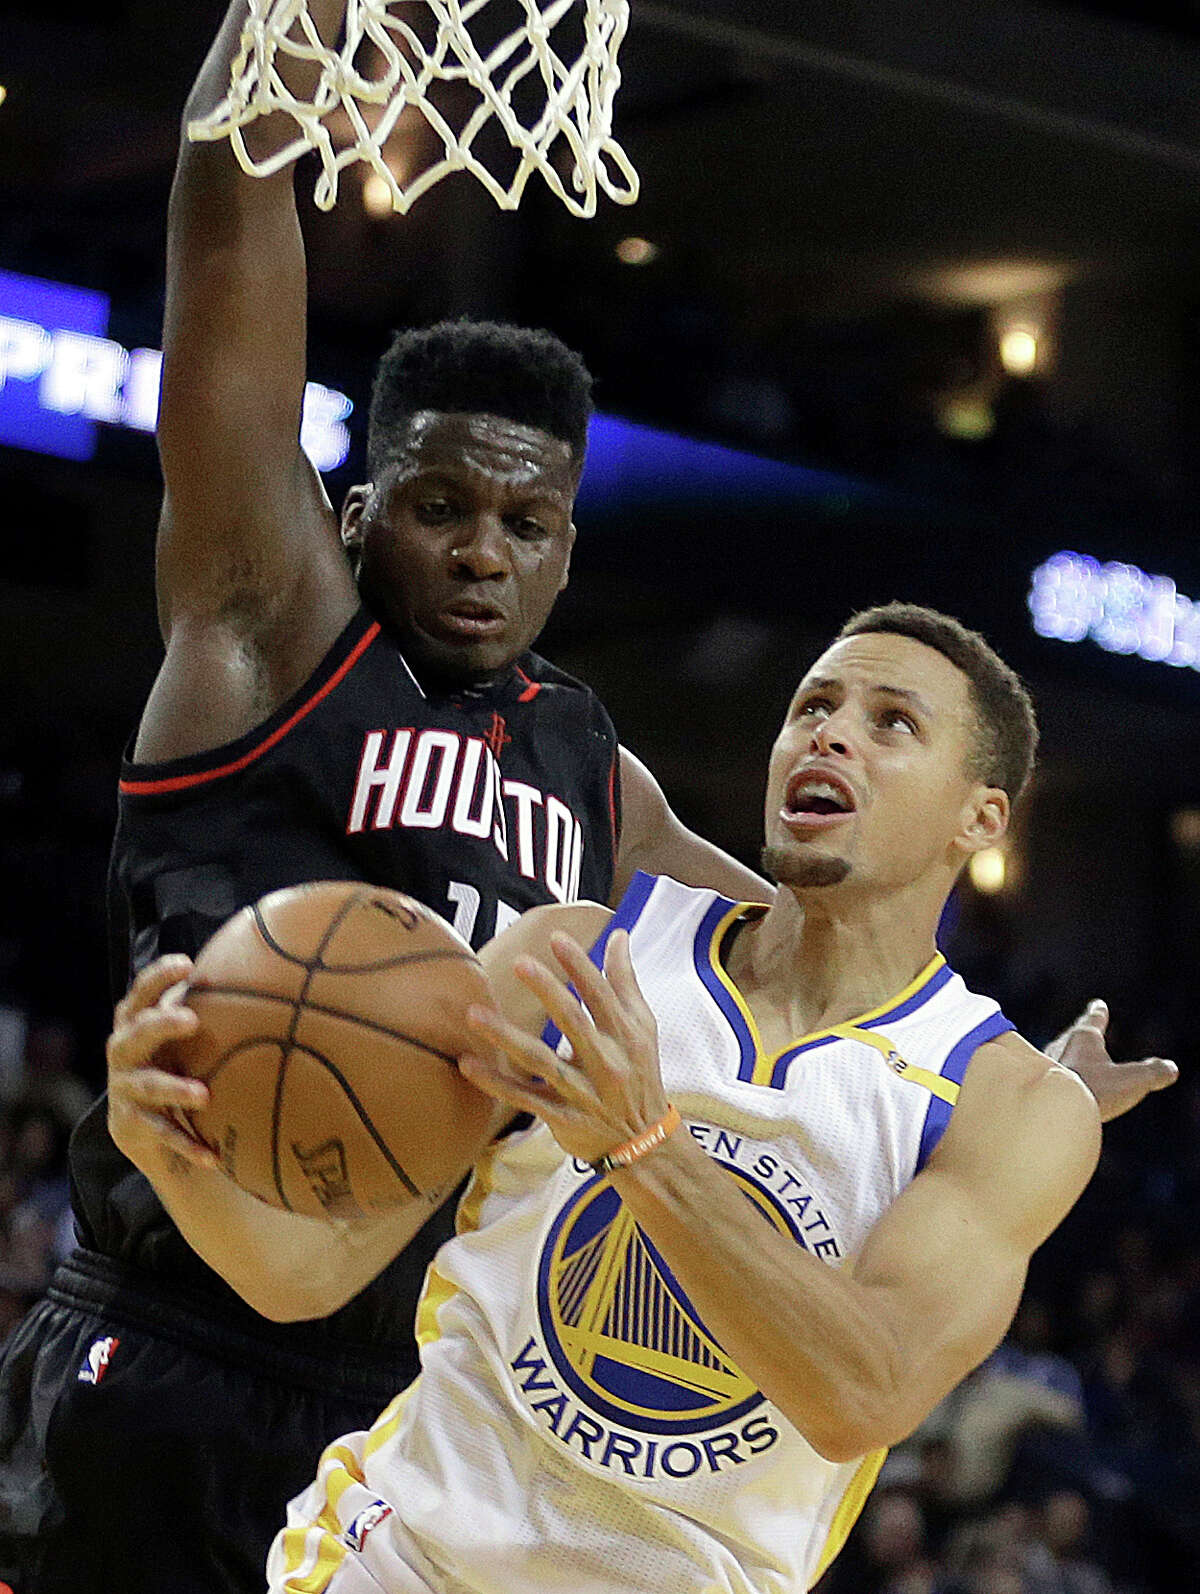 Golden State Warriors' Stephen Curry, right, shoots against Houston Rockets' Clint Capela during the second half of an NBA basketball game Thursday, Dec. 1, 2016, in Oakland, Calif. Houston won 132-127 in double overtime. (AP Photo/Ben Margot)